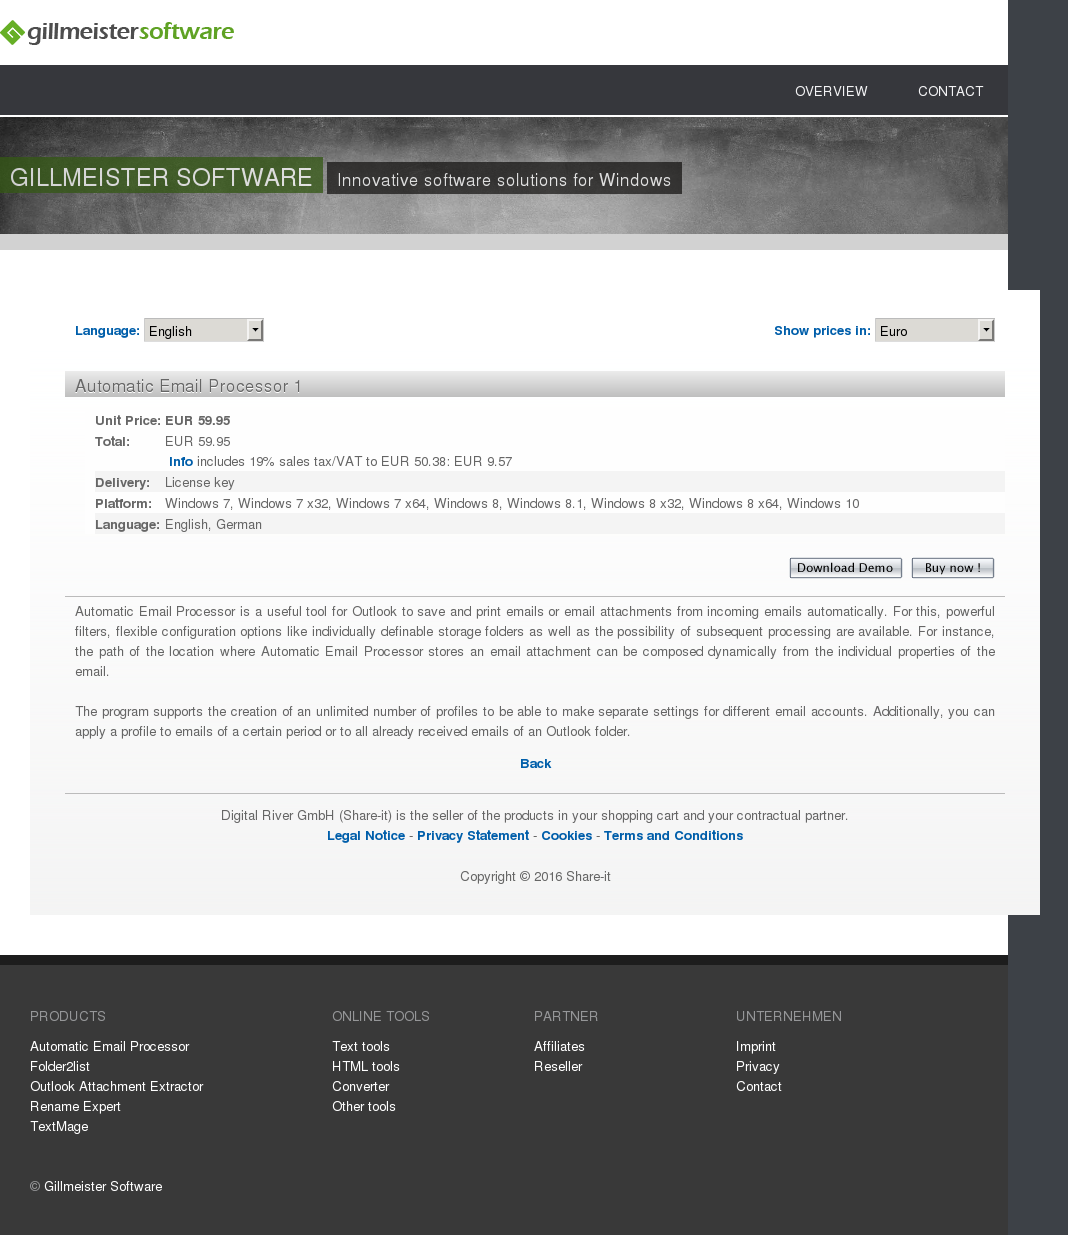 Automatic Email Processor 1